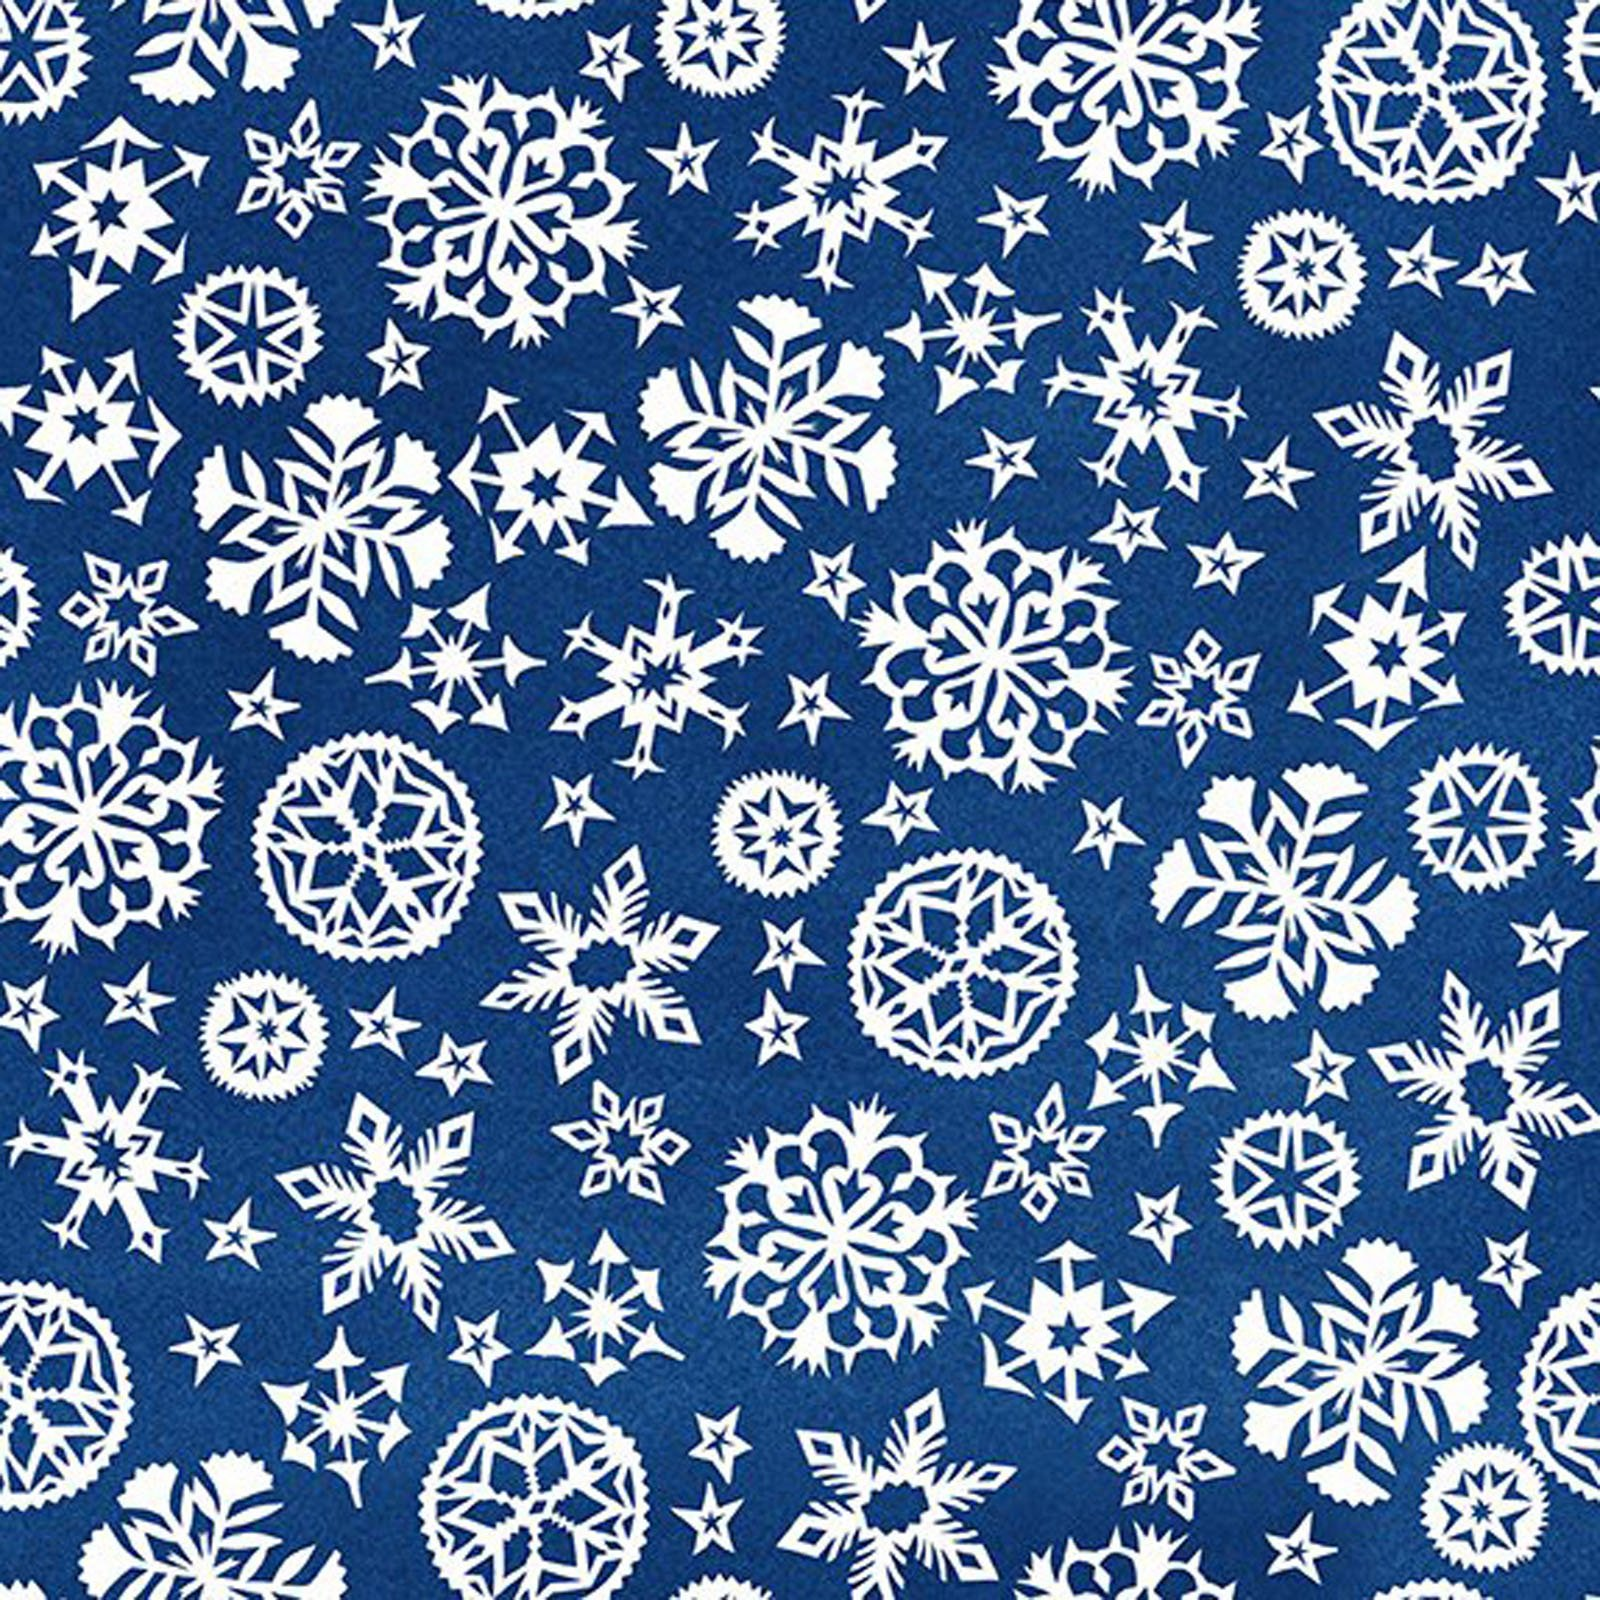 INTH-7JPL 1 - SNOWY BY JULIE PASCHKIS SNOWFLAKES BLUE - AVAILABLE TO ORDER